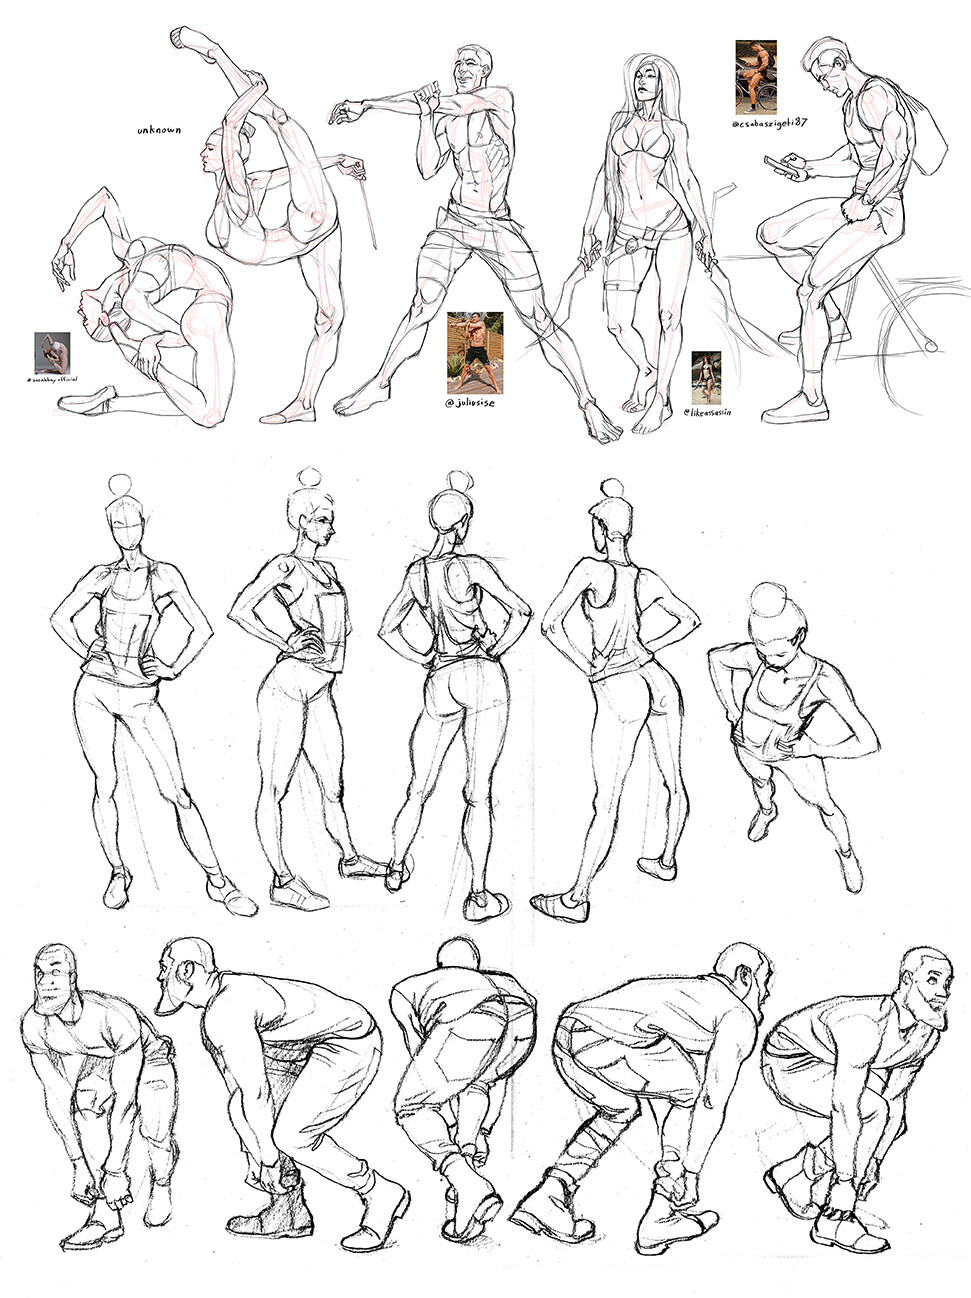 Matt rhodes april figurestudies